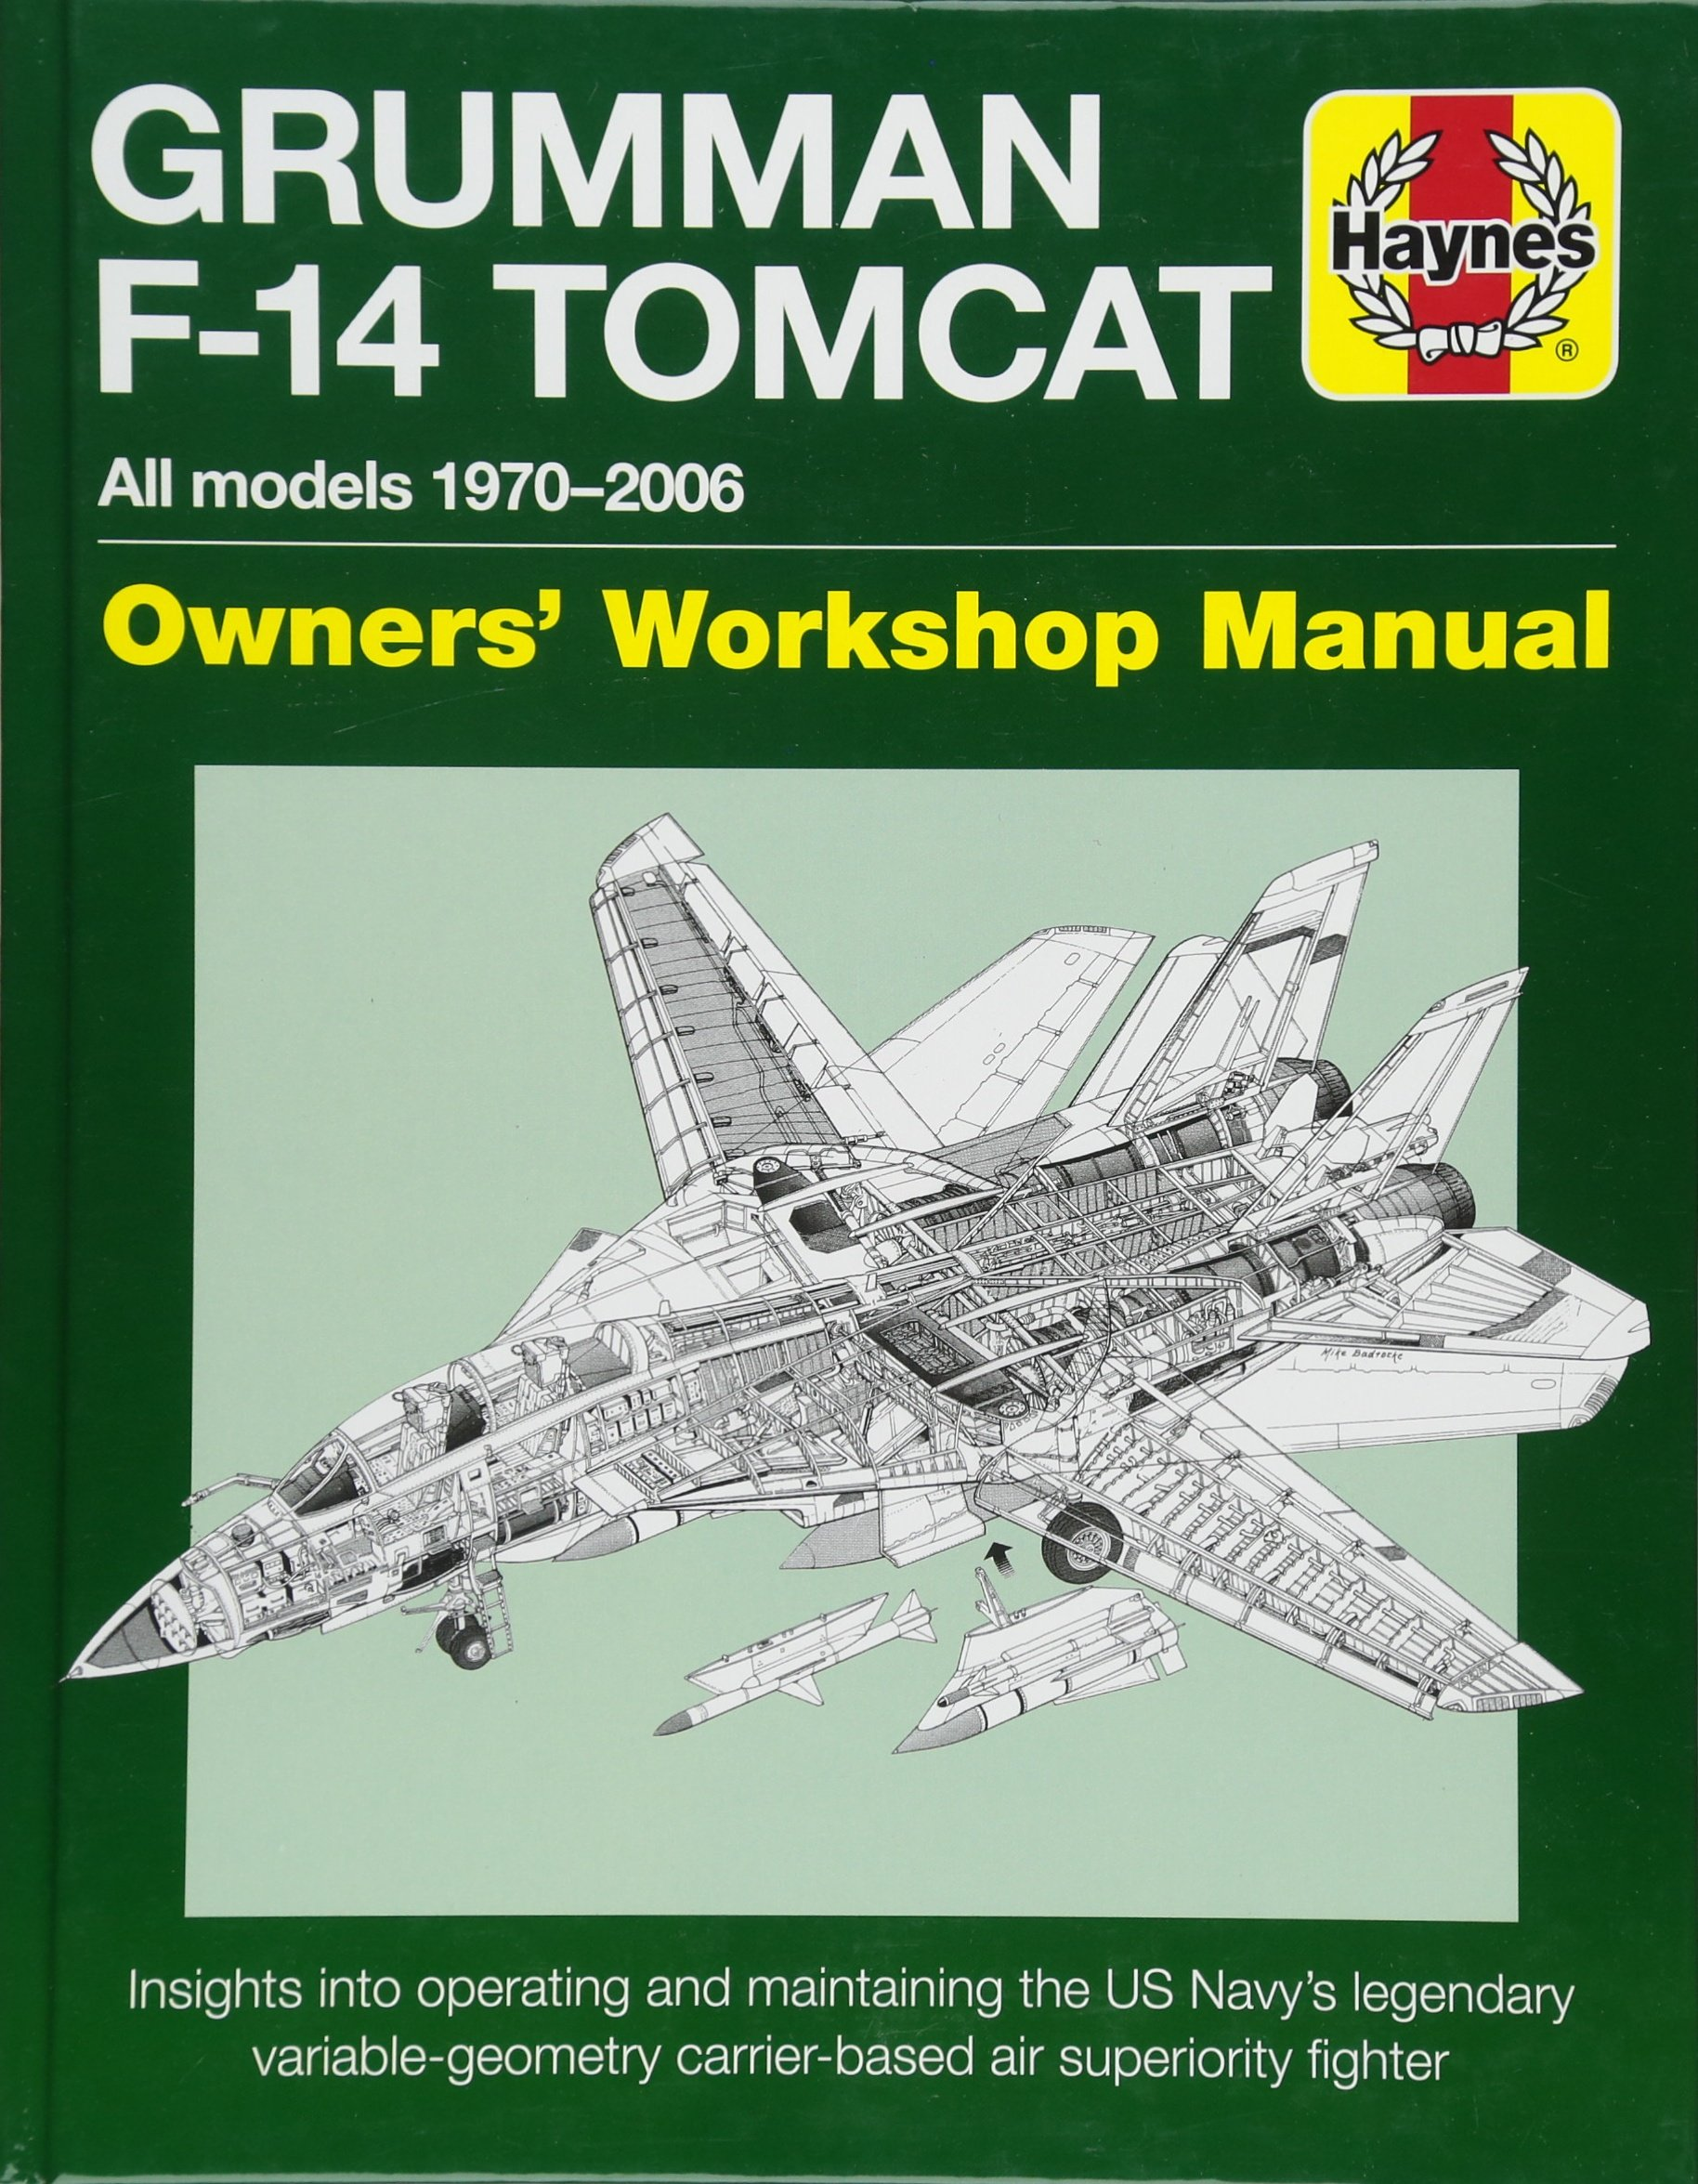 Grumman F-14 Tomcat Owners' Workshop Manual: All models 1970-2006 -  Insights into operating and maintaining the US Navy's legendary variable  geometry ...